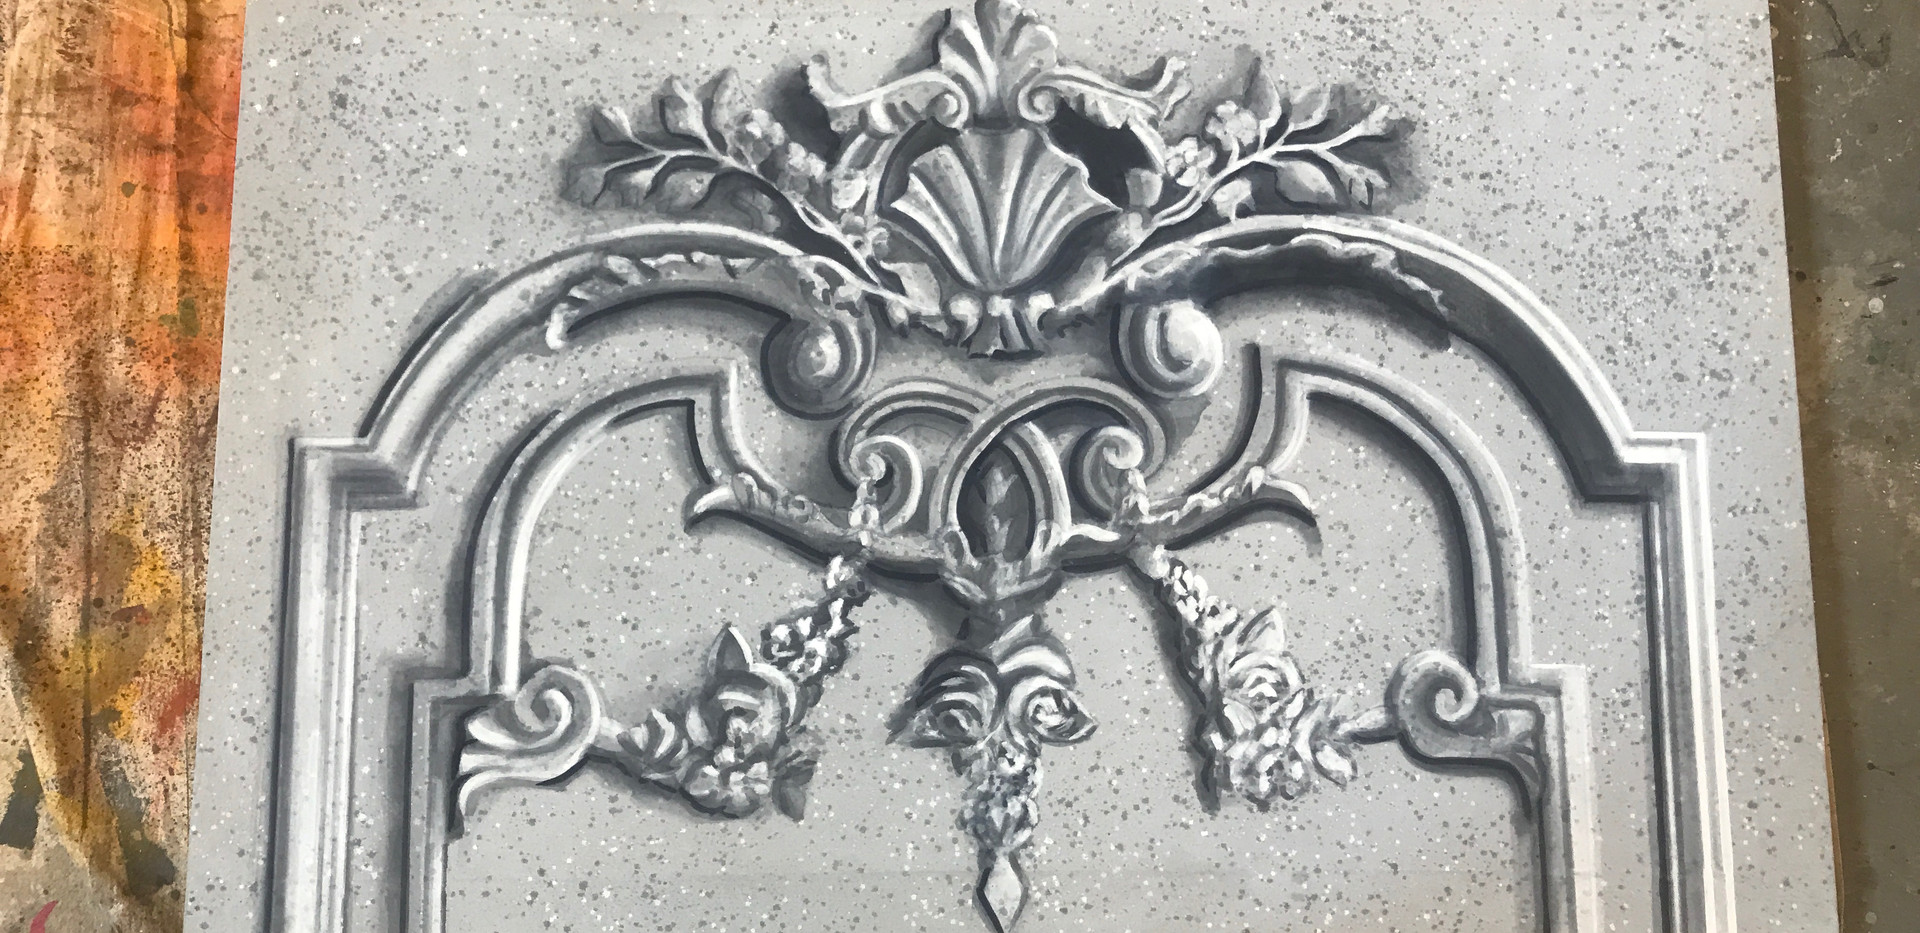 Stone Carving - Scenic Painting Project